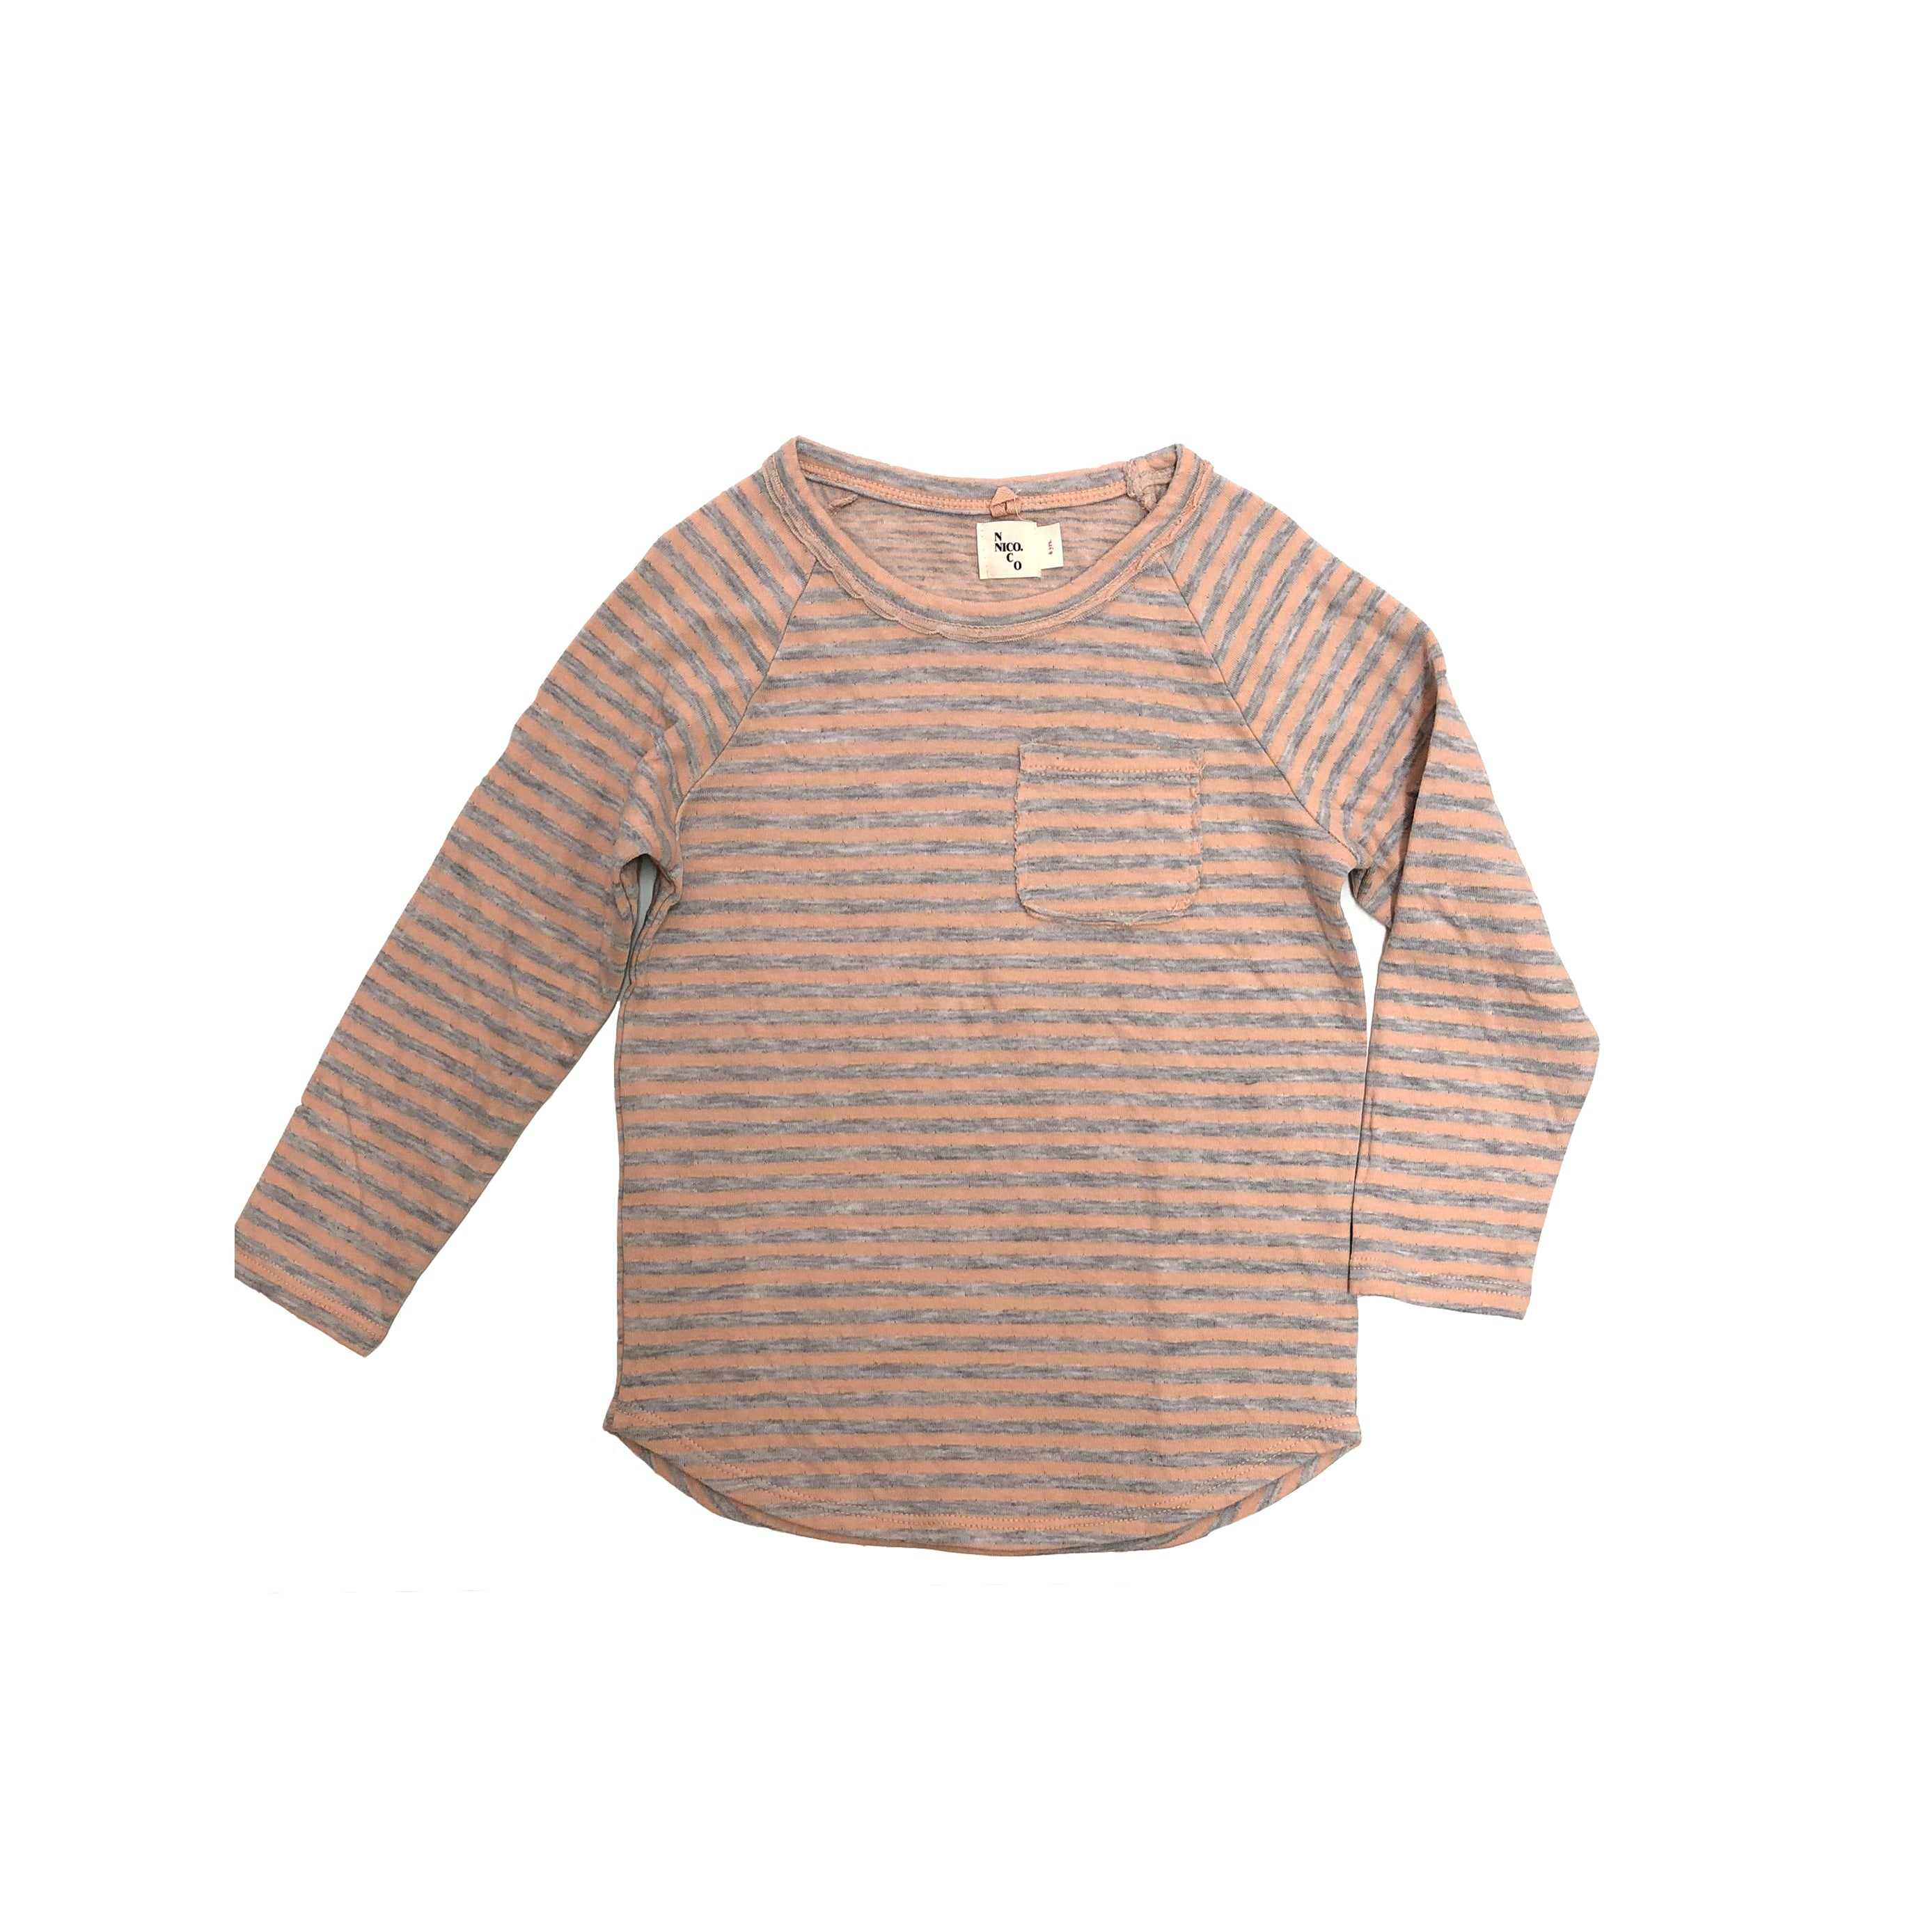 Nico Nico Perry Raglan Long Sleeve Kid's T-Shirt Petal Pink/Grey Stripe | BIEN BIEN